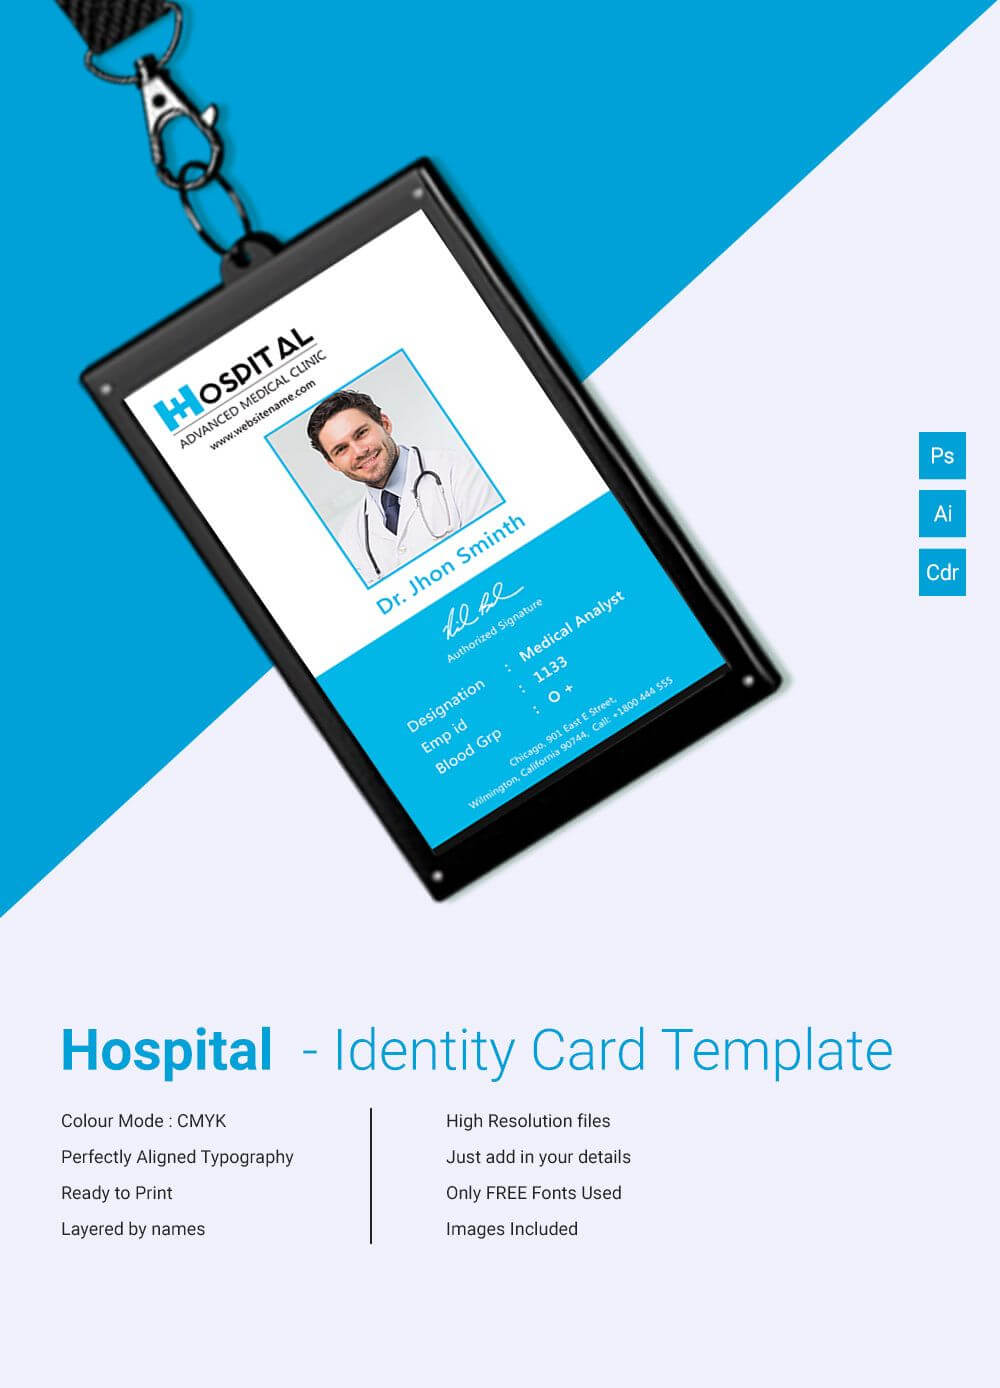 001 Identification Card Templates Free Download Template Within Portrait Id Card Template